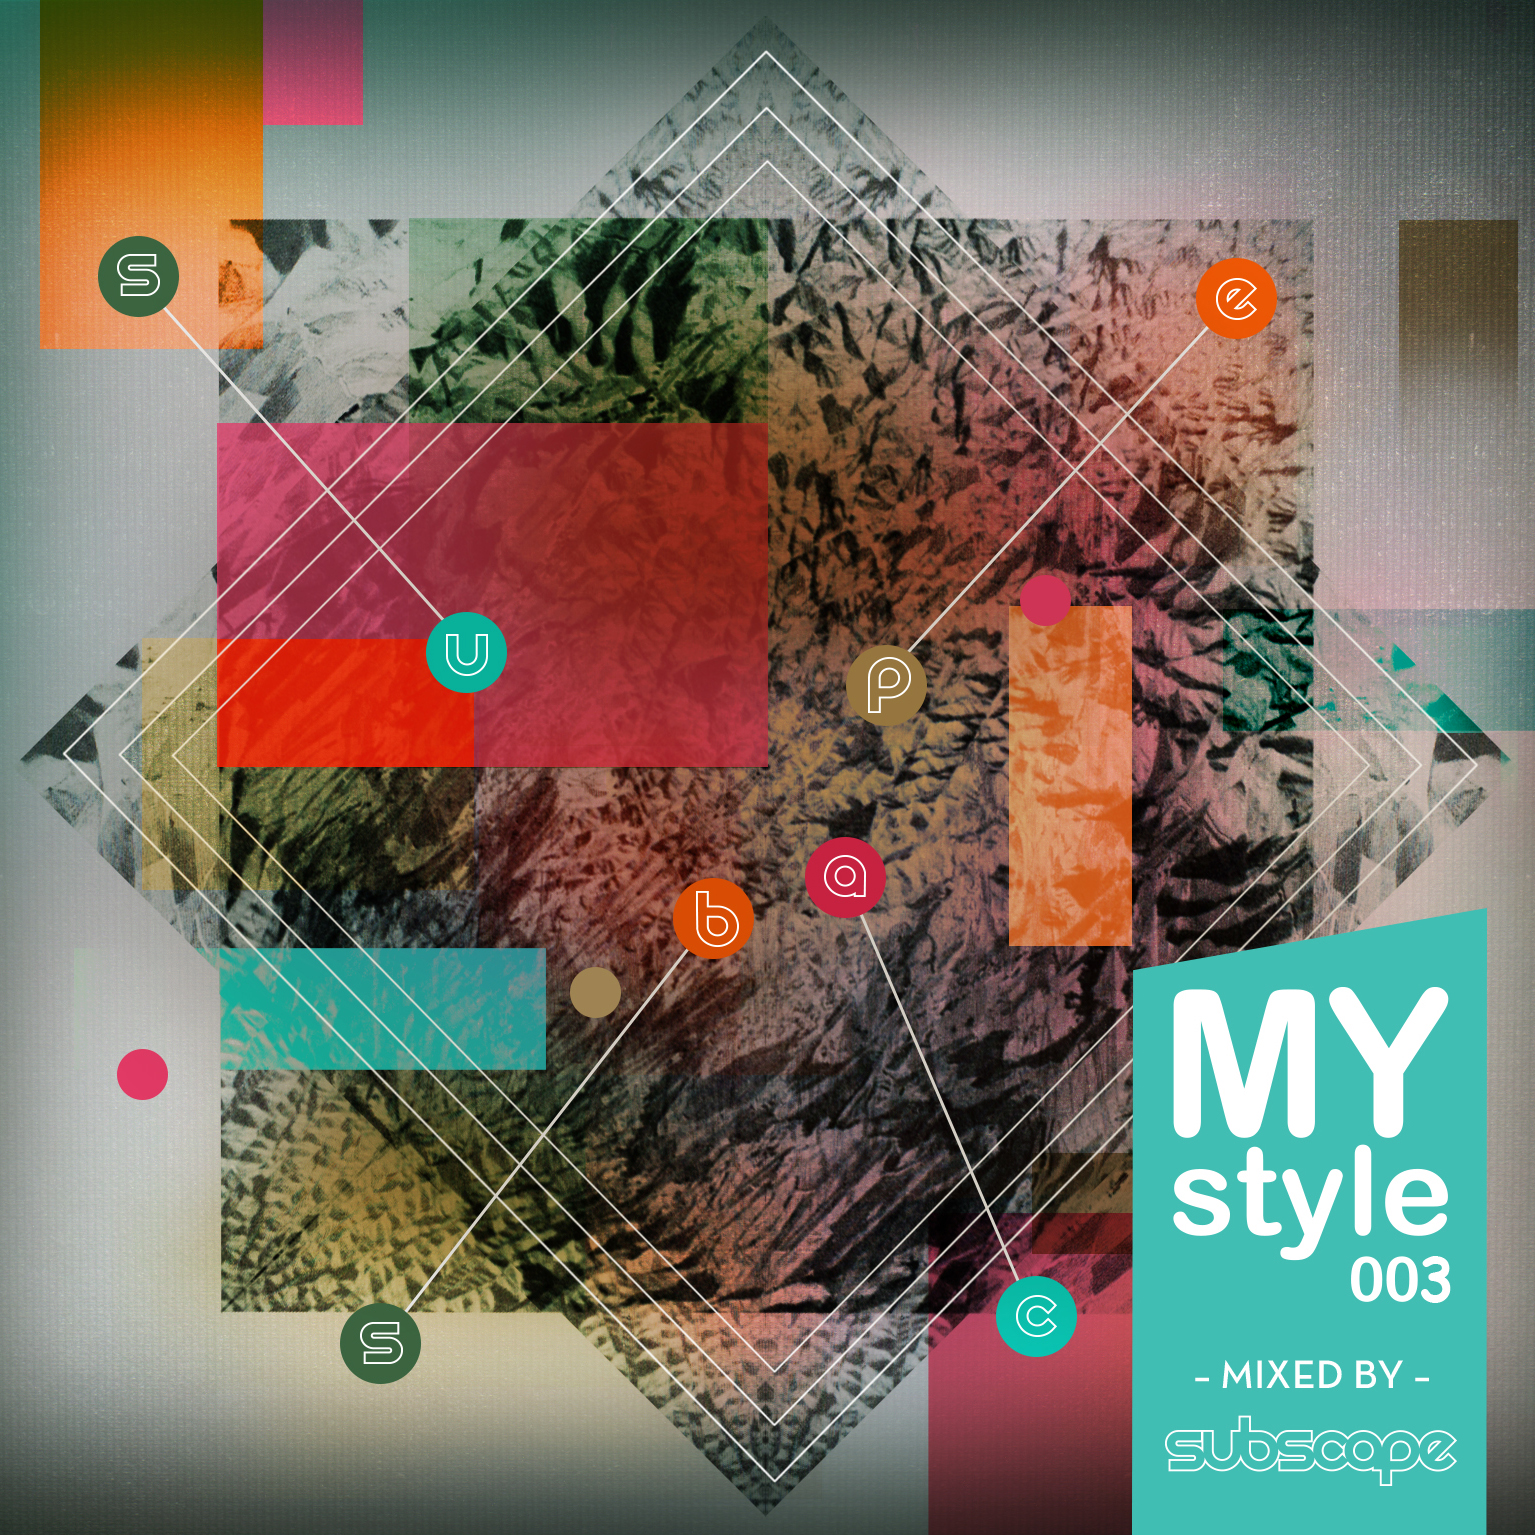 DPCD005: MYSTYLE003 MIXED BY SUBSCAPE